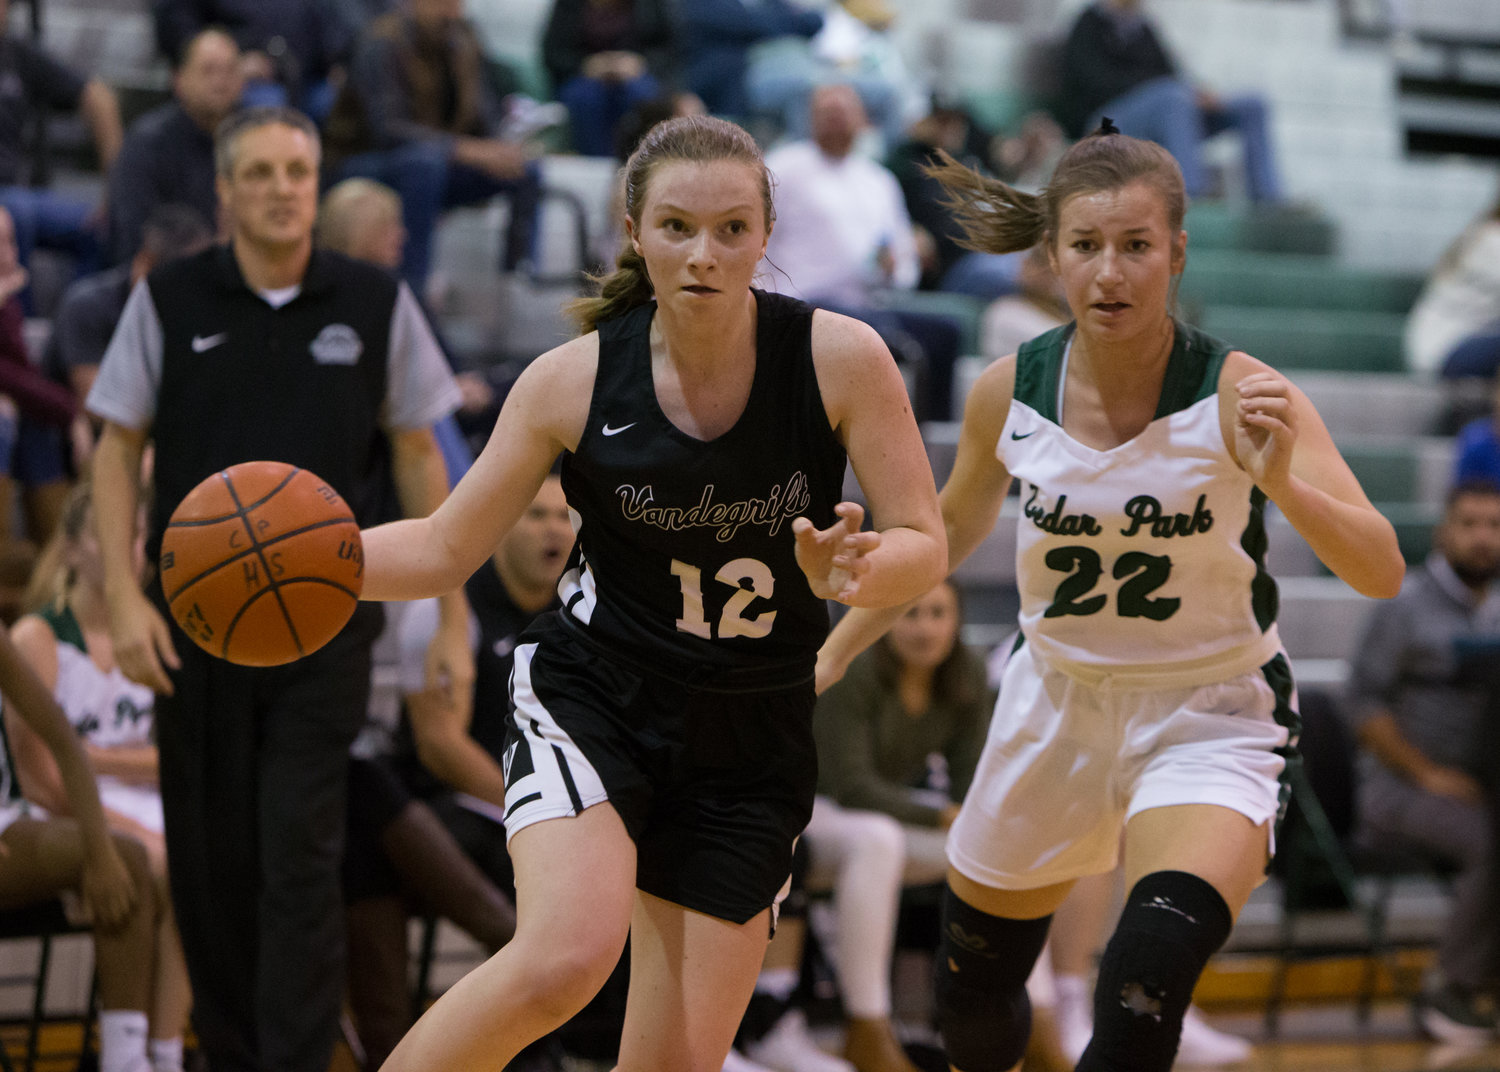 Vandegrift Vipers guard Jen Moore (12) moves the ball during a high school girls basketball game between Cedar Park and Vandegrift at Cedar Park High School on Tuesday, Nov. 13, 2018 in Cedar Park, TX.